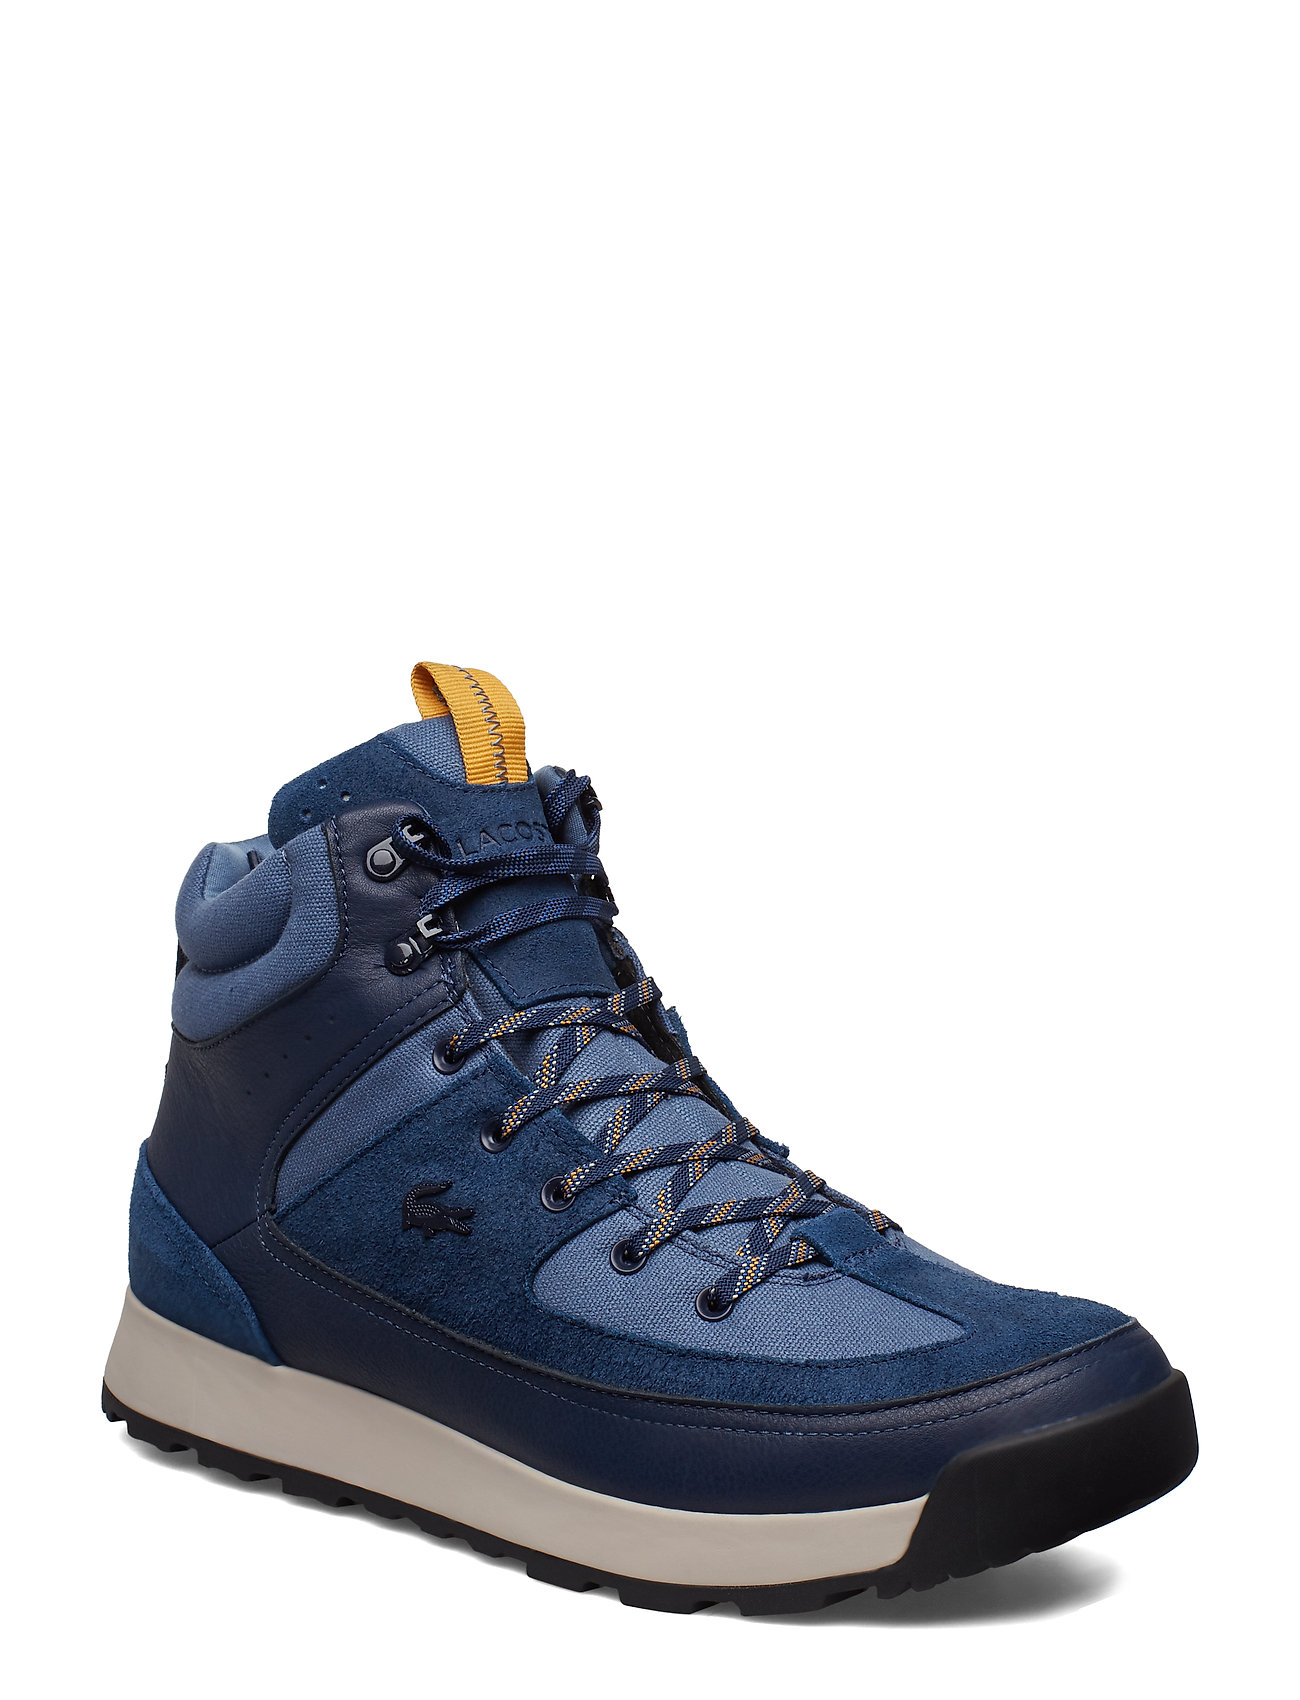 Image of Urban Breaker3191cma High-top Sneakers Blå LACOSTE SHOES (3214086569)